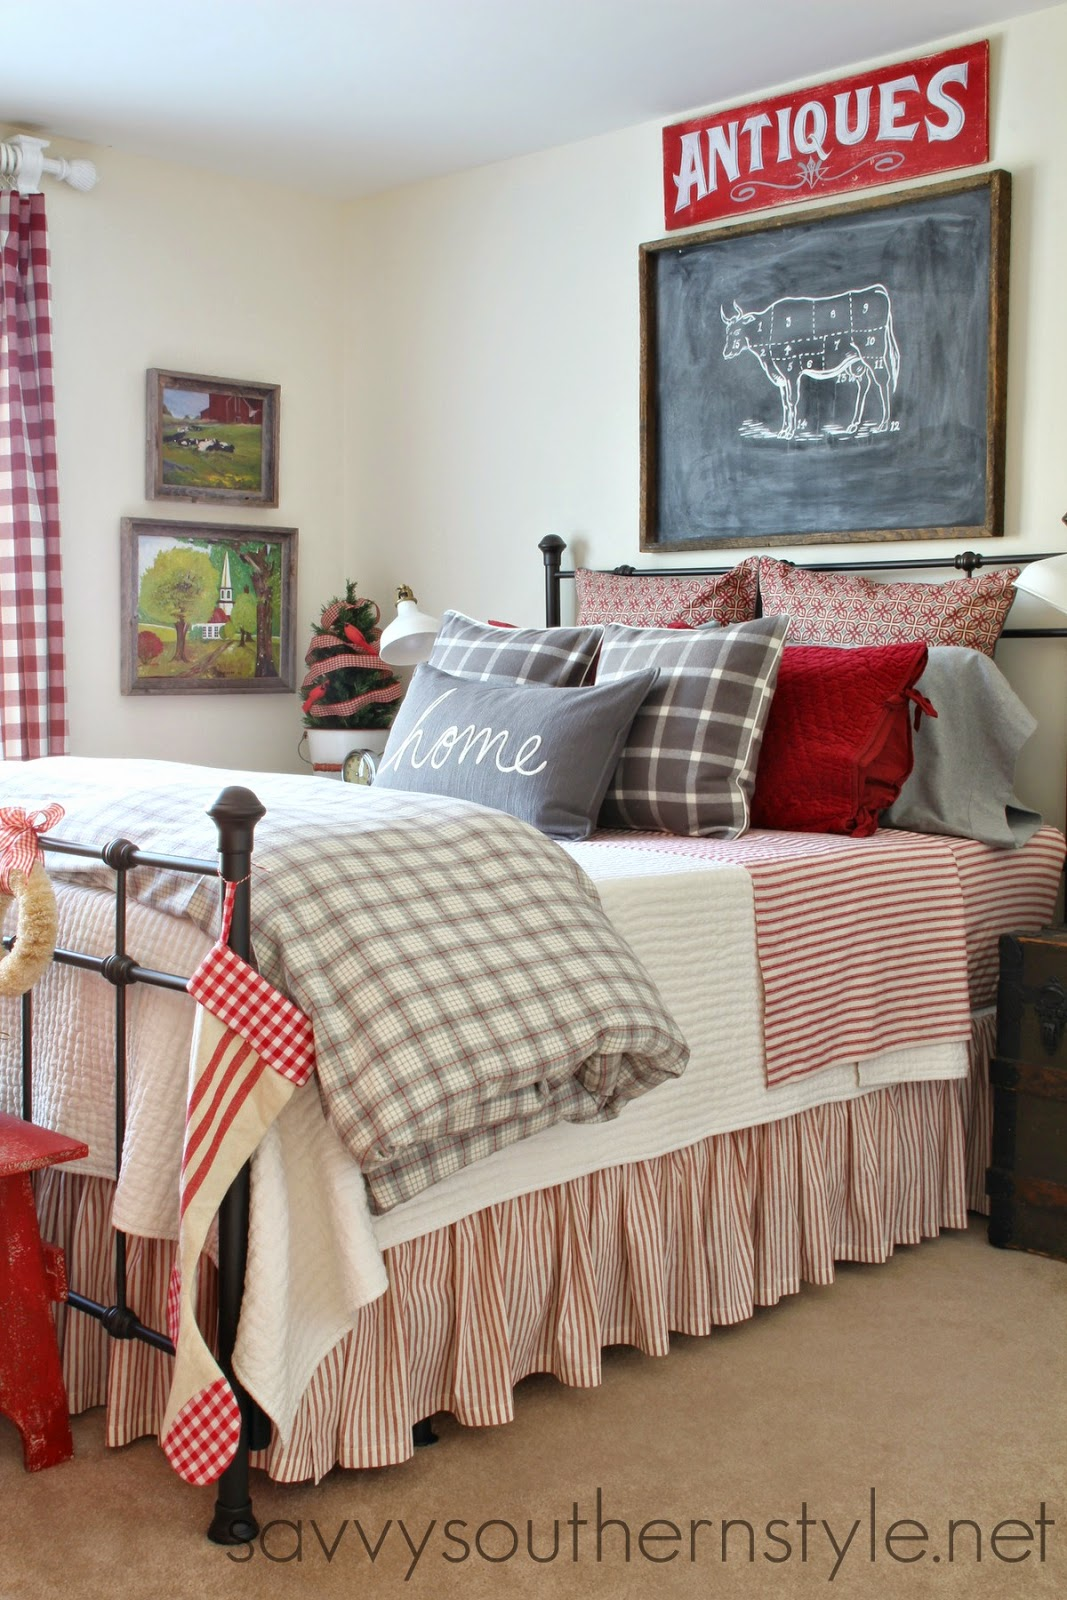 Savvy southern style farmhouse guest room christmas for Southern style bedroom